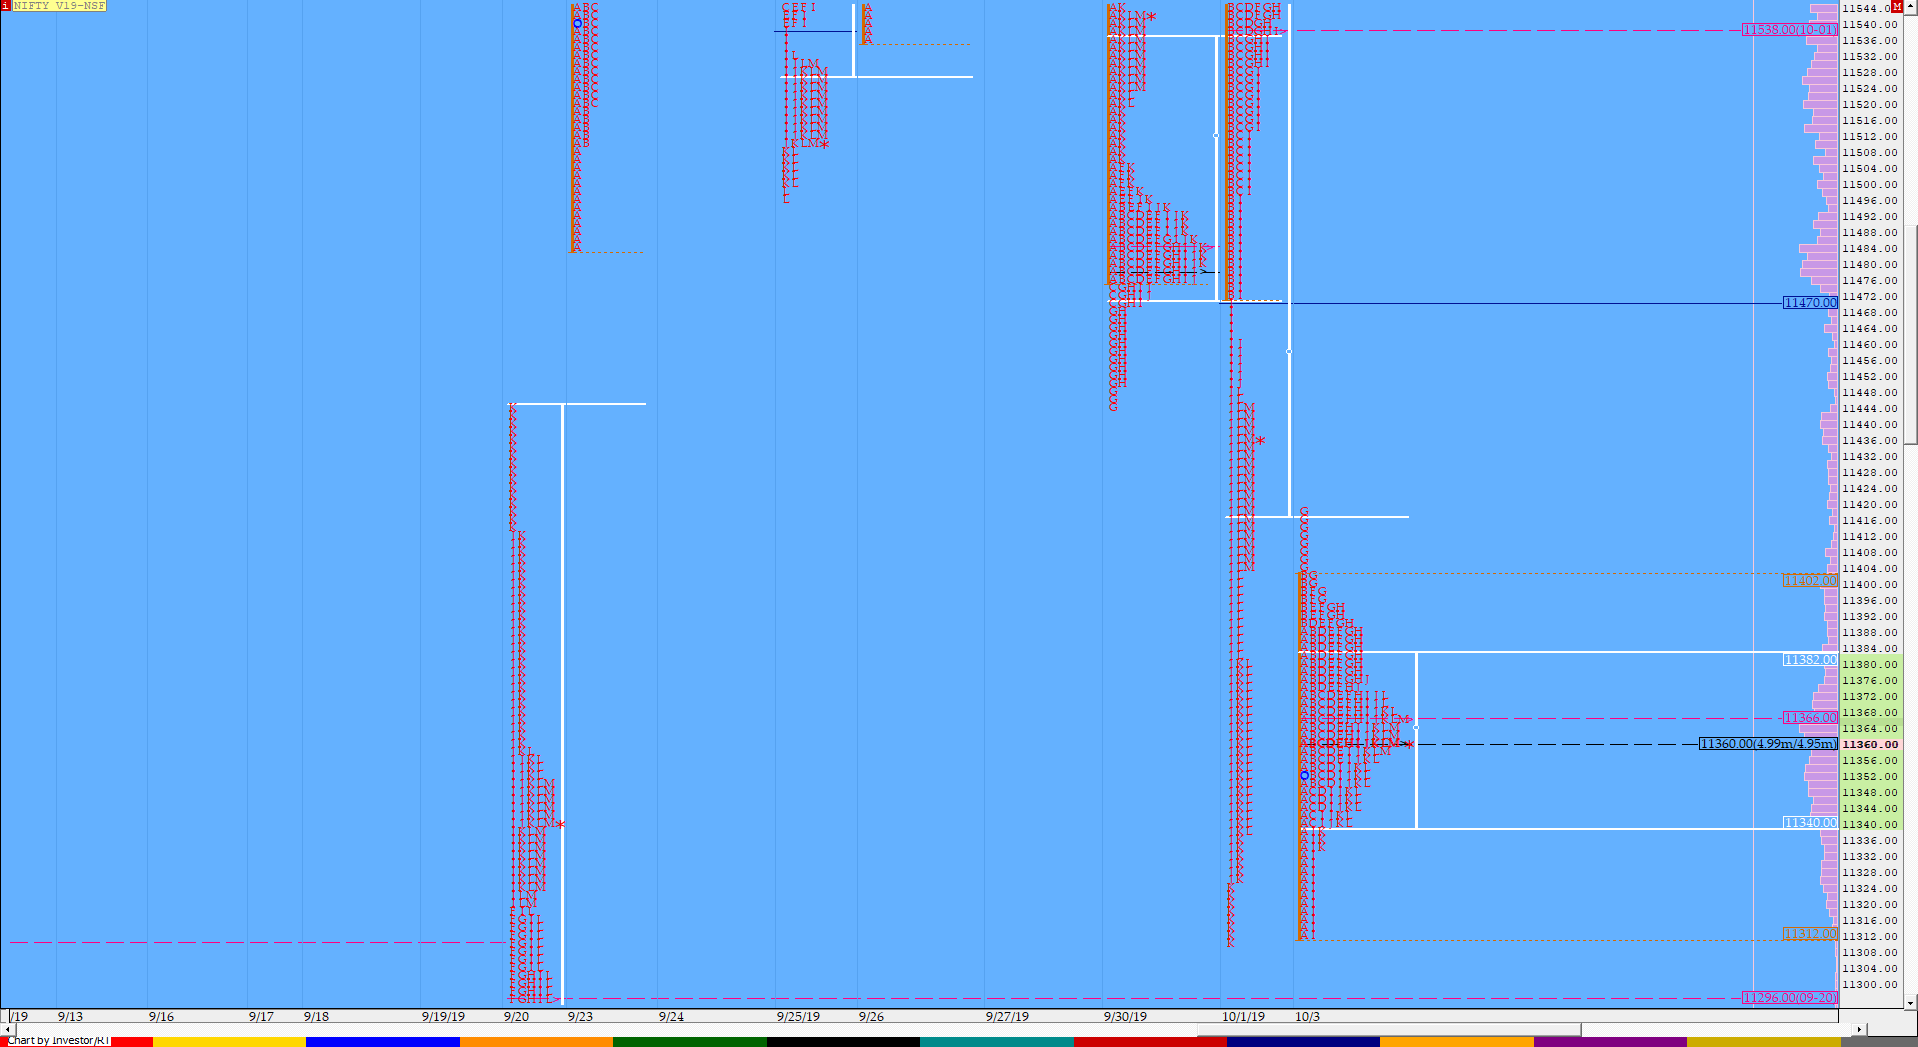 Market Profile Analysis dated 3rd October 2